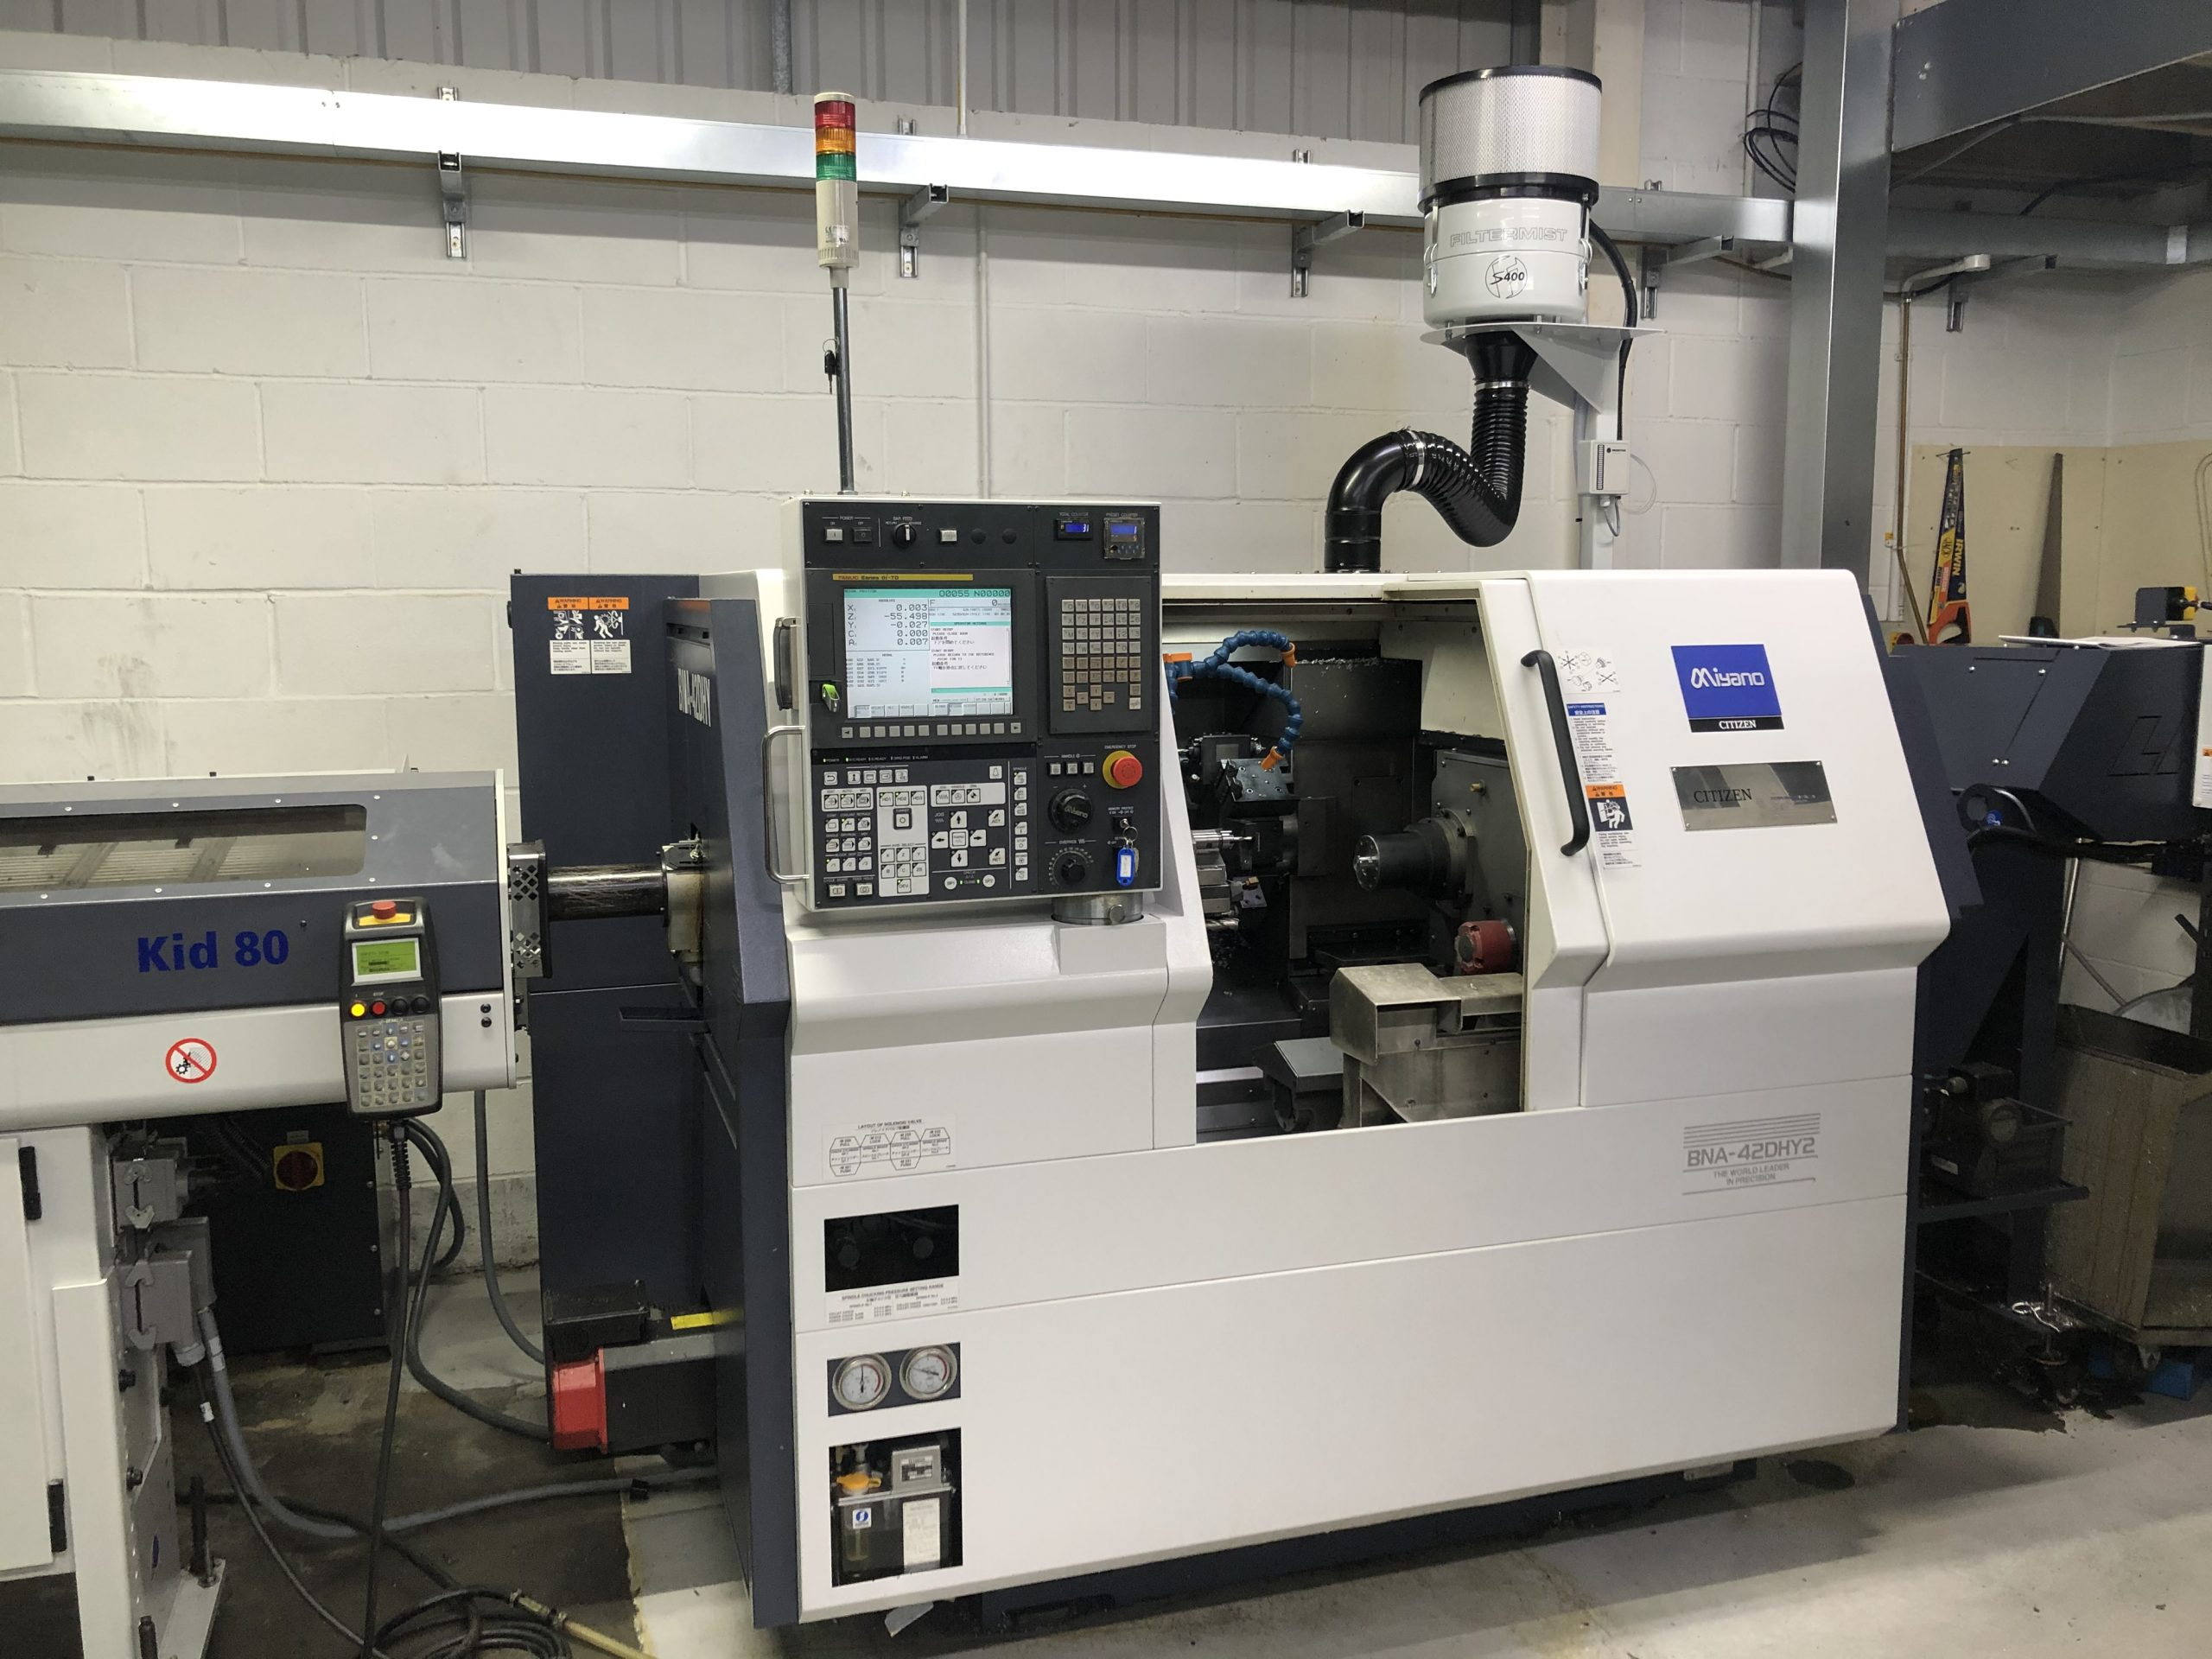 Preowned Miyano BNA-42DHY2 7 axis Turning Centre